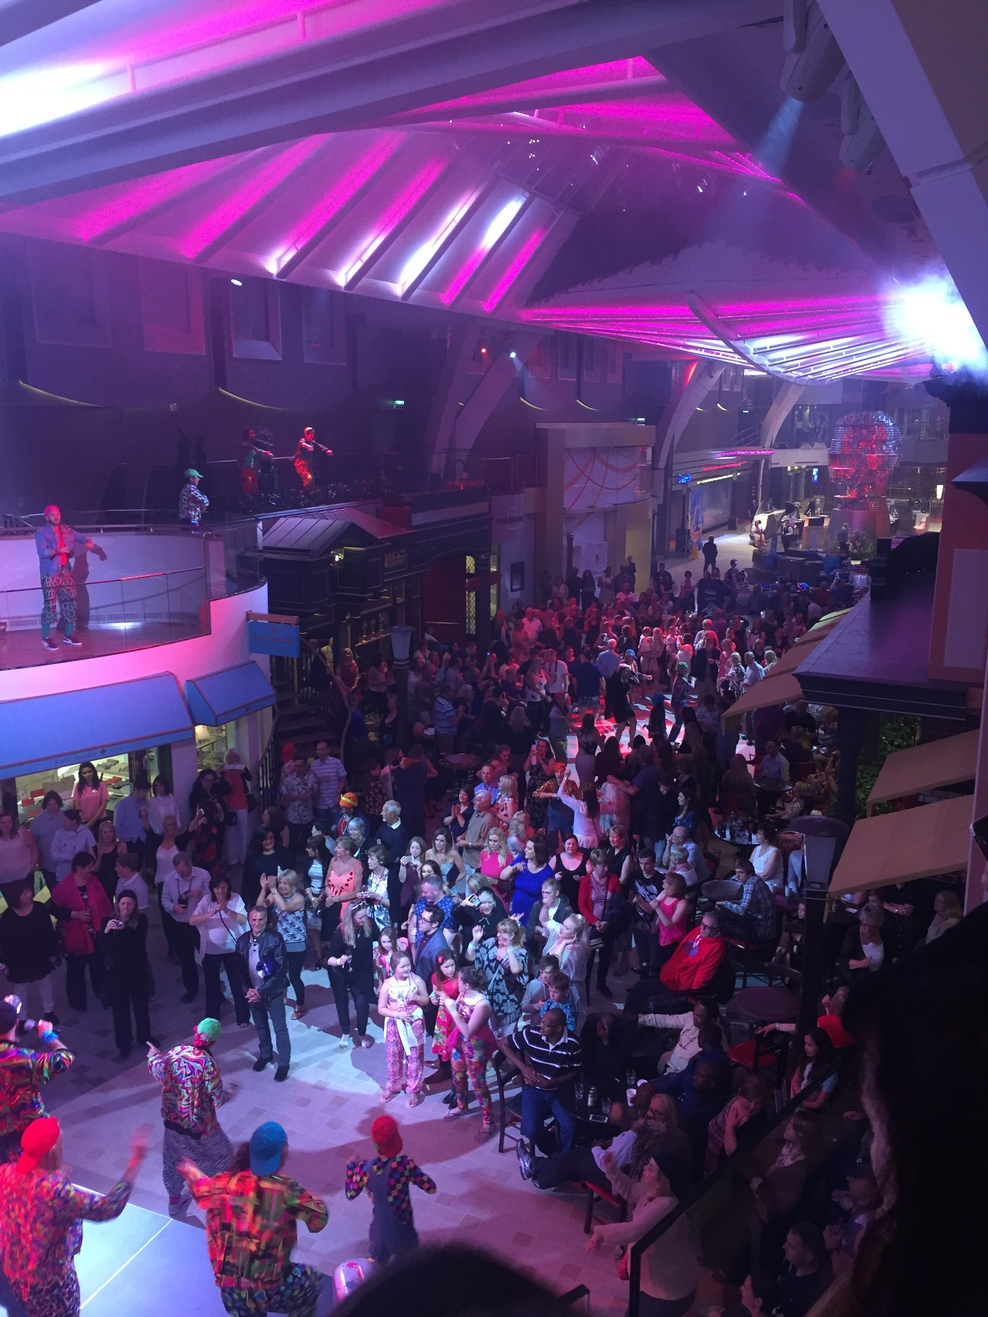 Royal Promenade on 90's dance party night